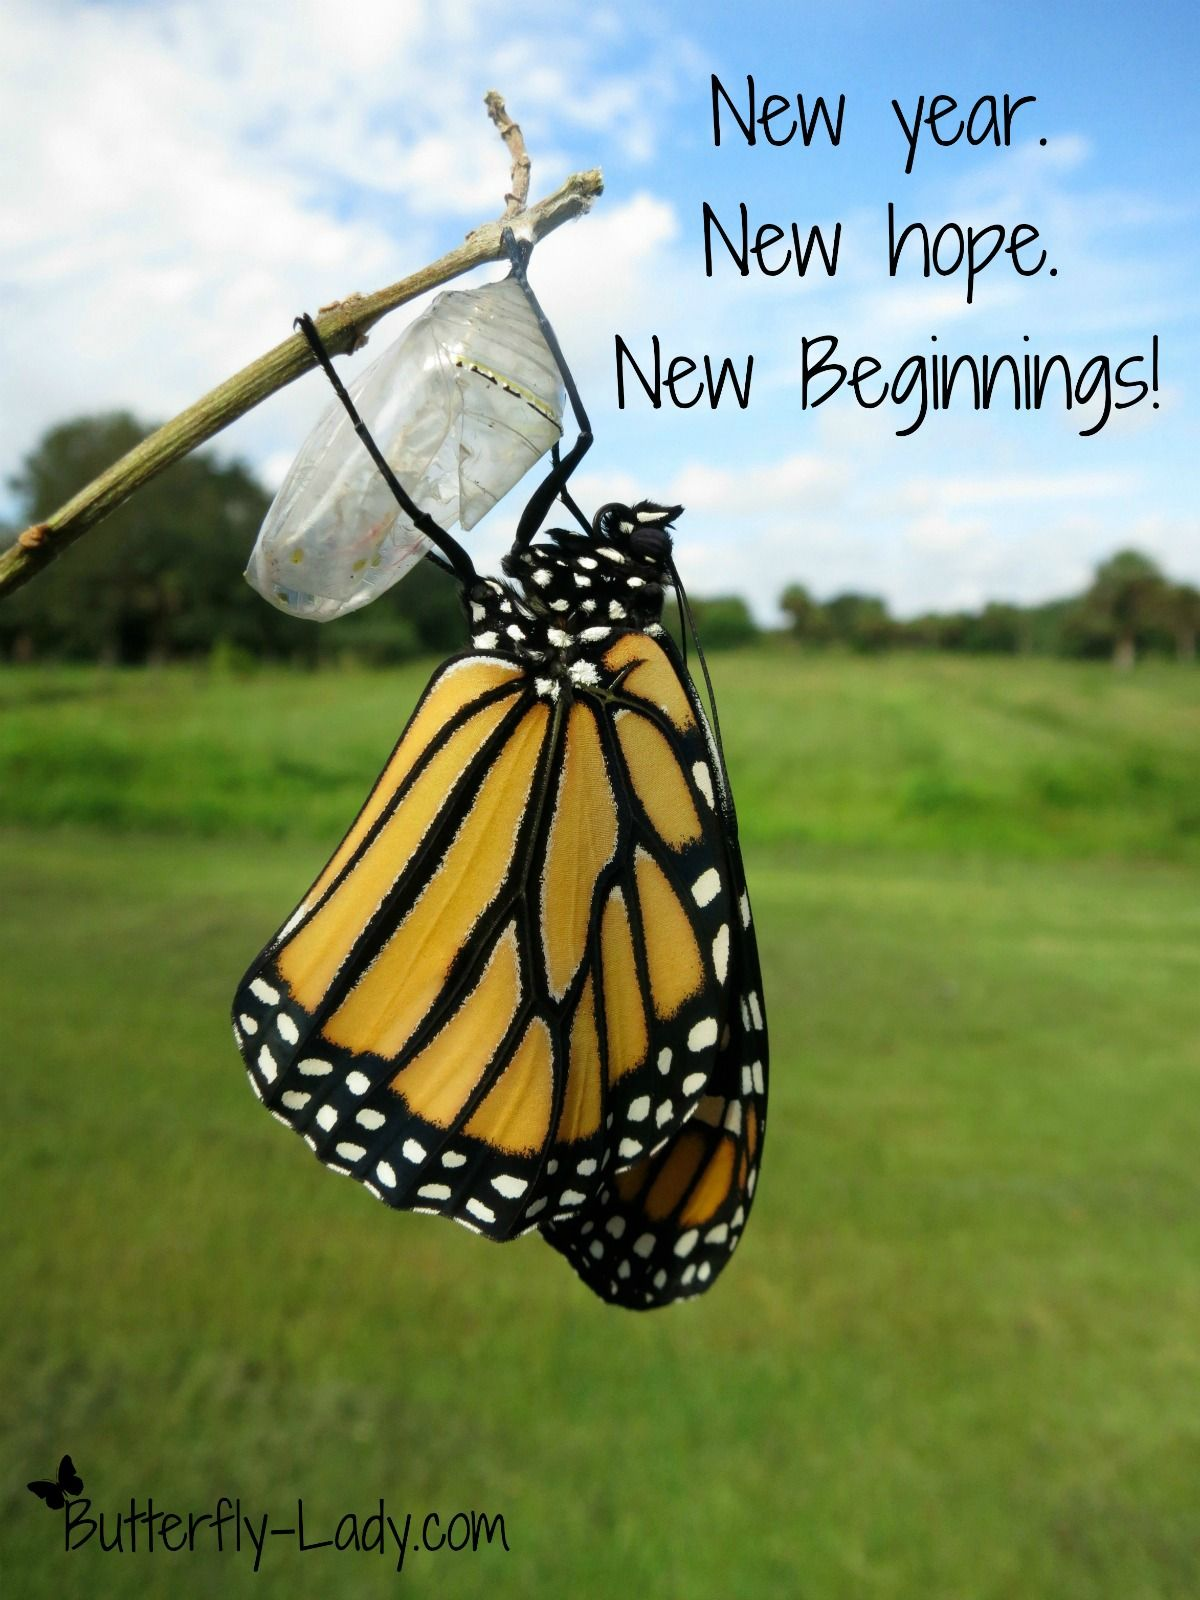 Just like the butterfly we can start a new life